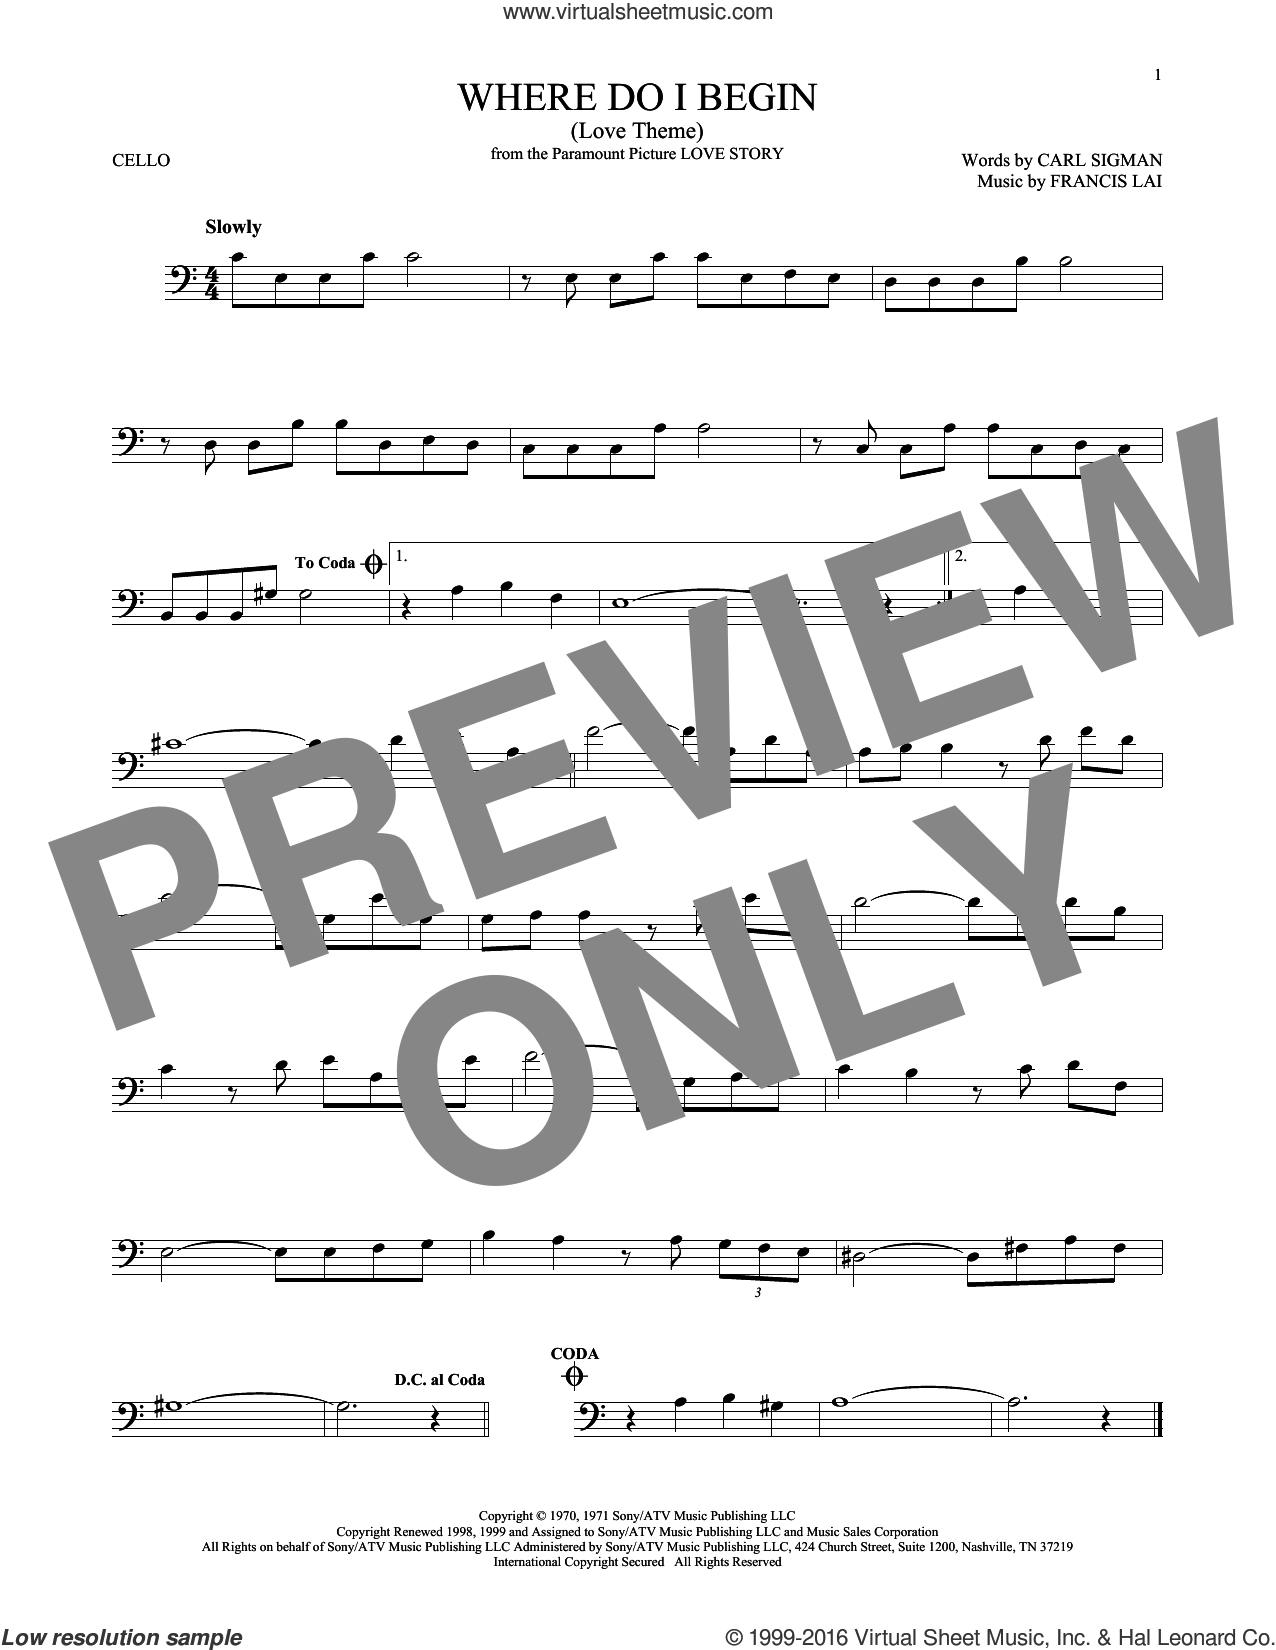 Where Do I Begin (Love Theme) sheet music for cello solo by Francis Lai, Andy Williams and Carl Sigman. Score Image Preview.